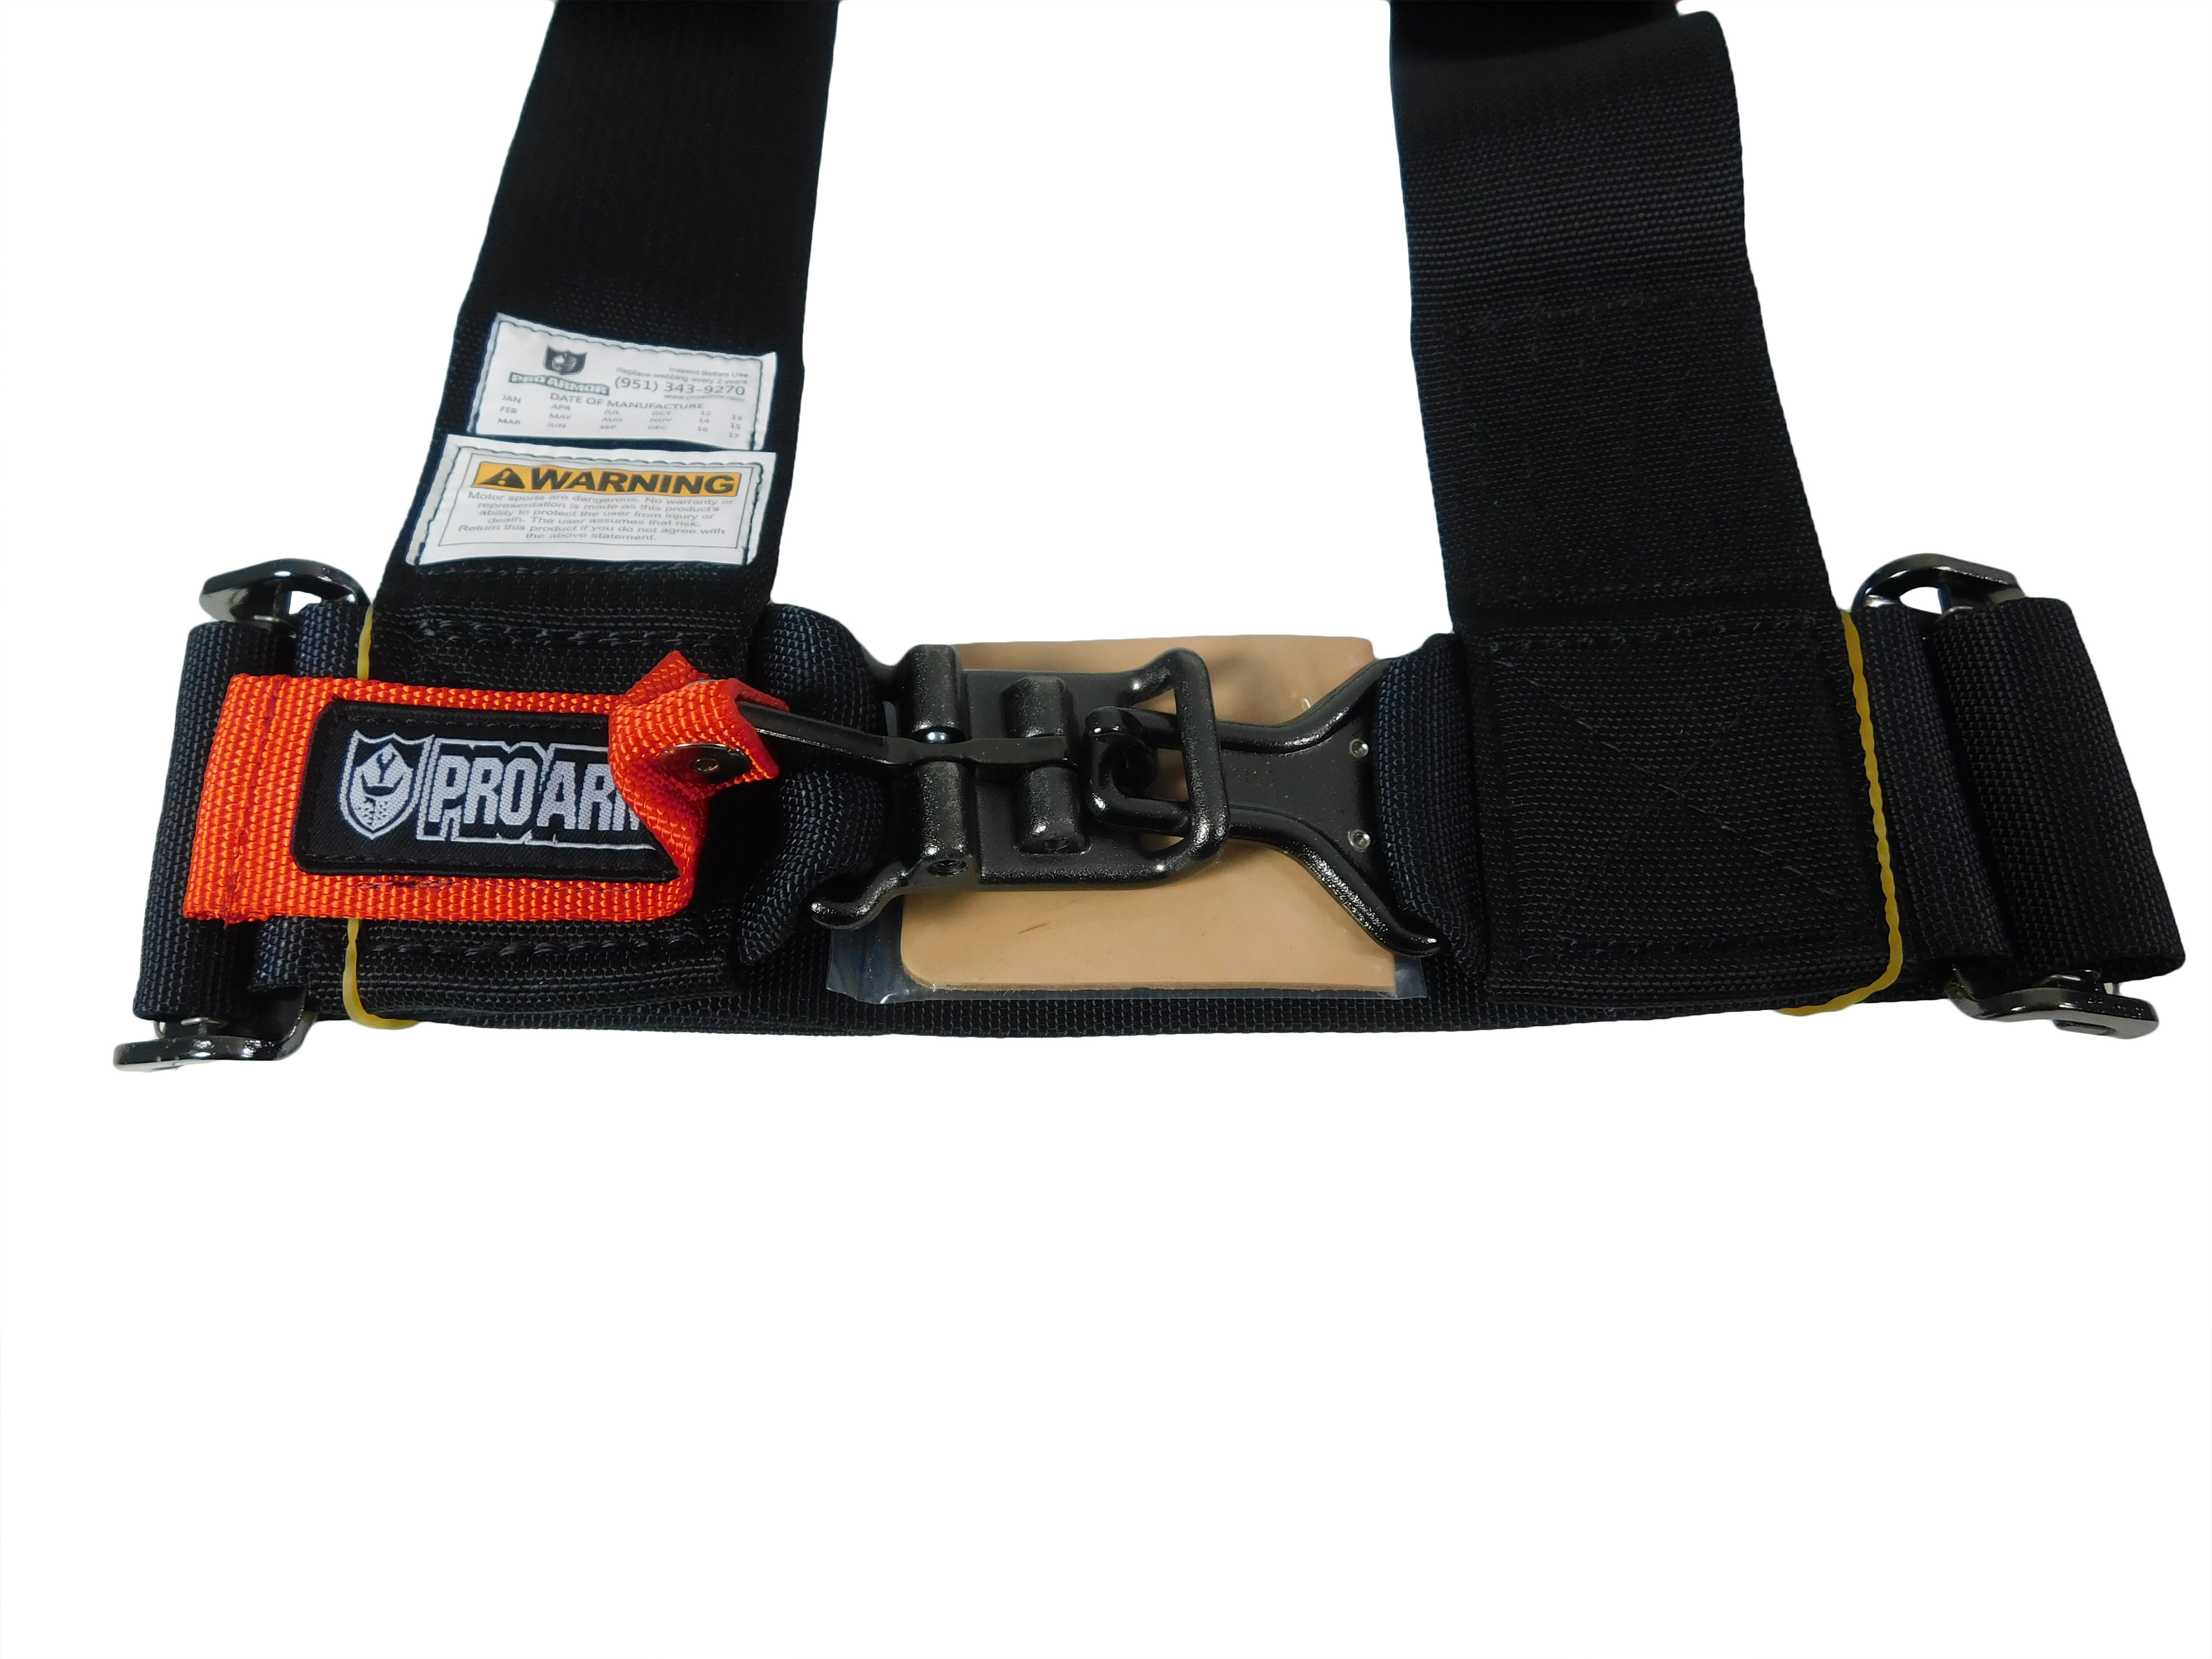 Pro-Armor-A115235-5-Point-3inch-Harness-with-Sewn-In-Pads-Special-Edition-image-4